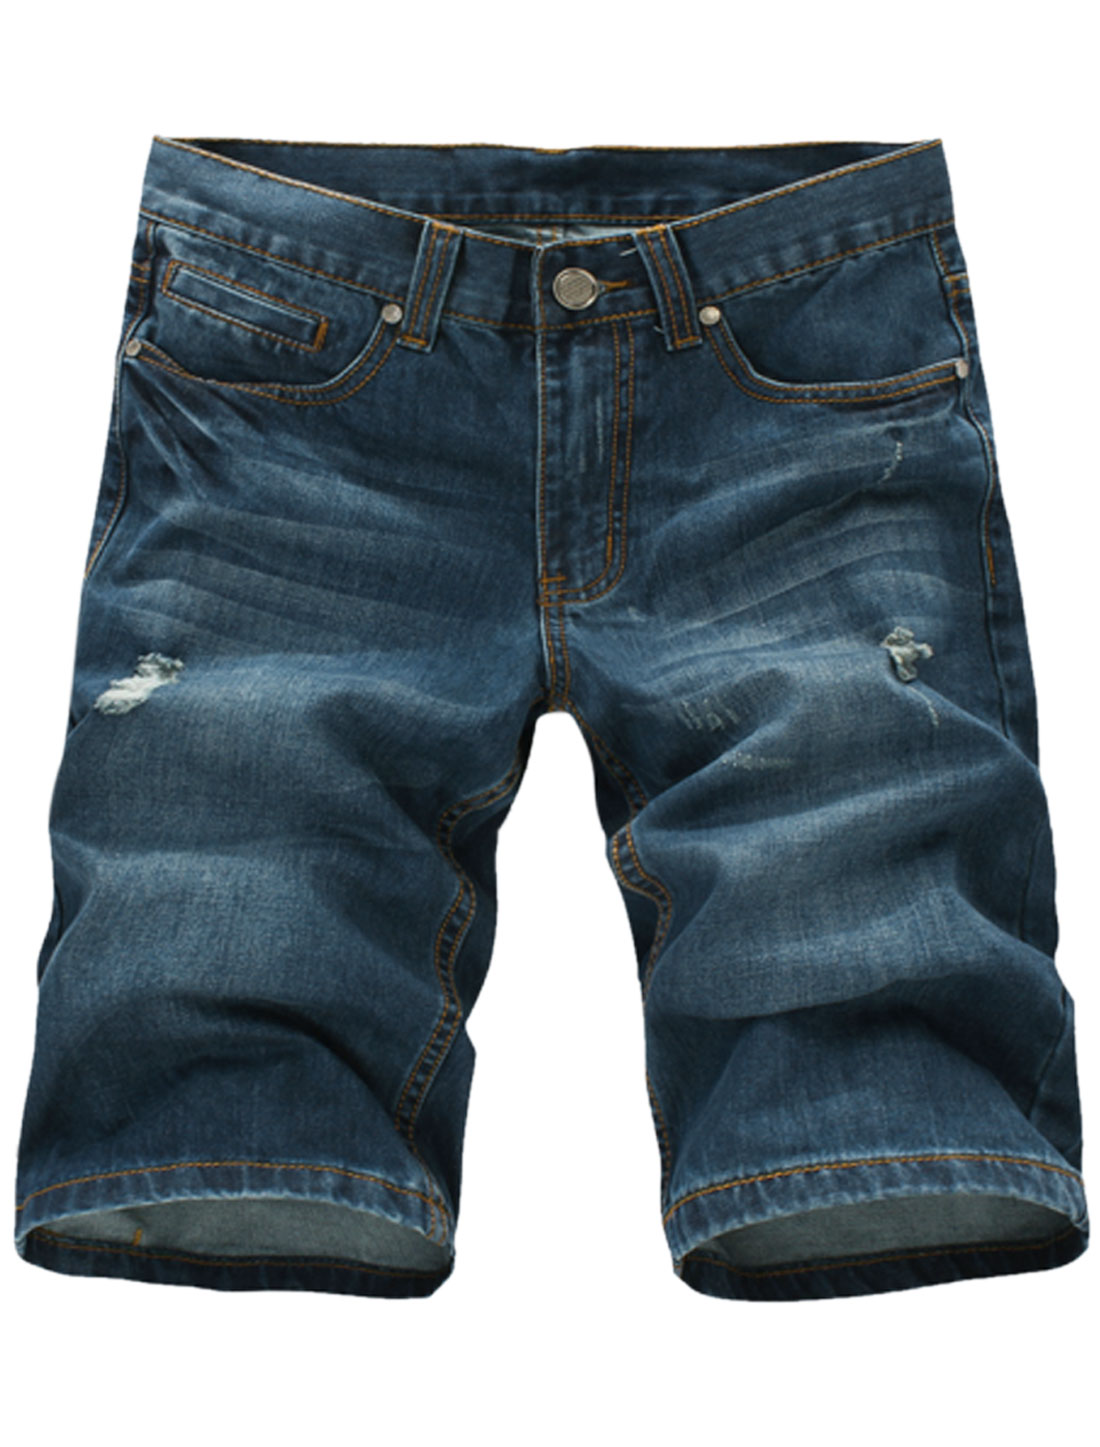 Man's Front Pockets Mid Rise Zip Fly Distressed Detail Denim Shorts Dark Blue W34